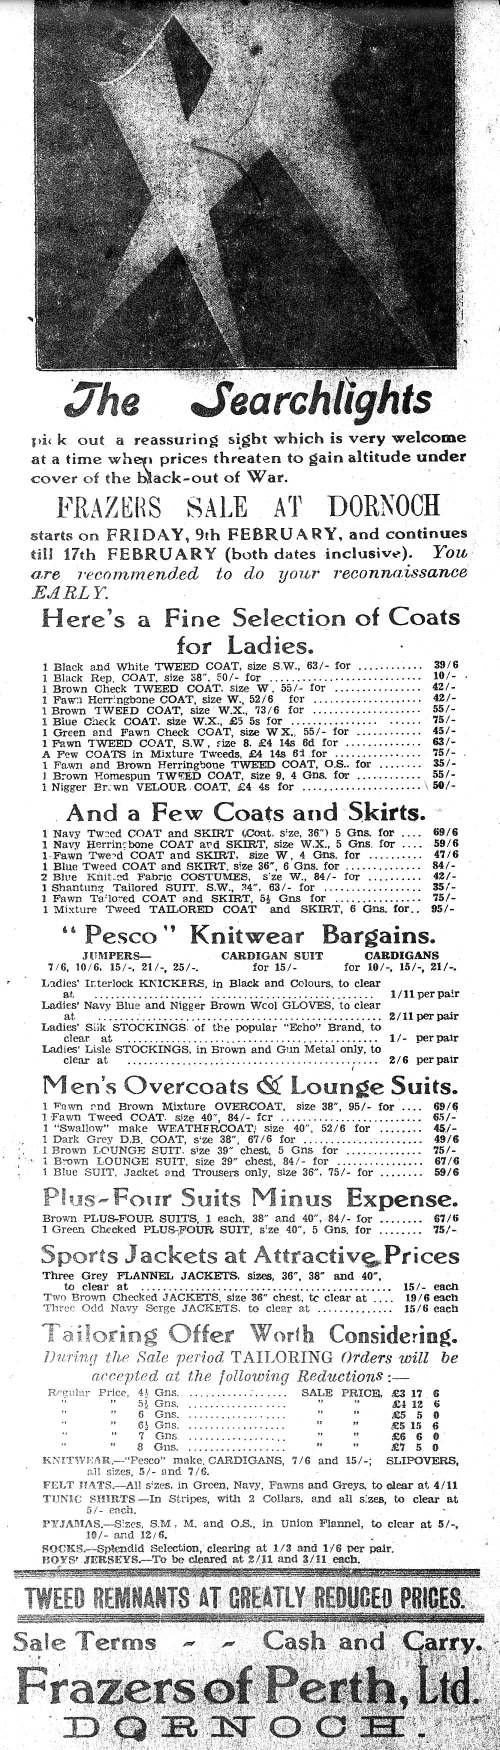 Advert for Frazers of Perth, Dornoch